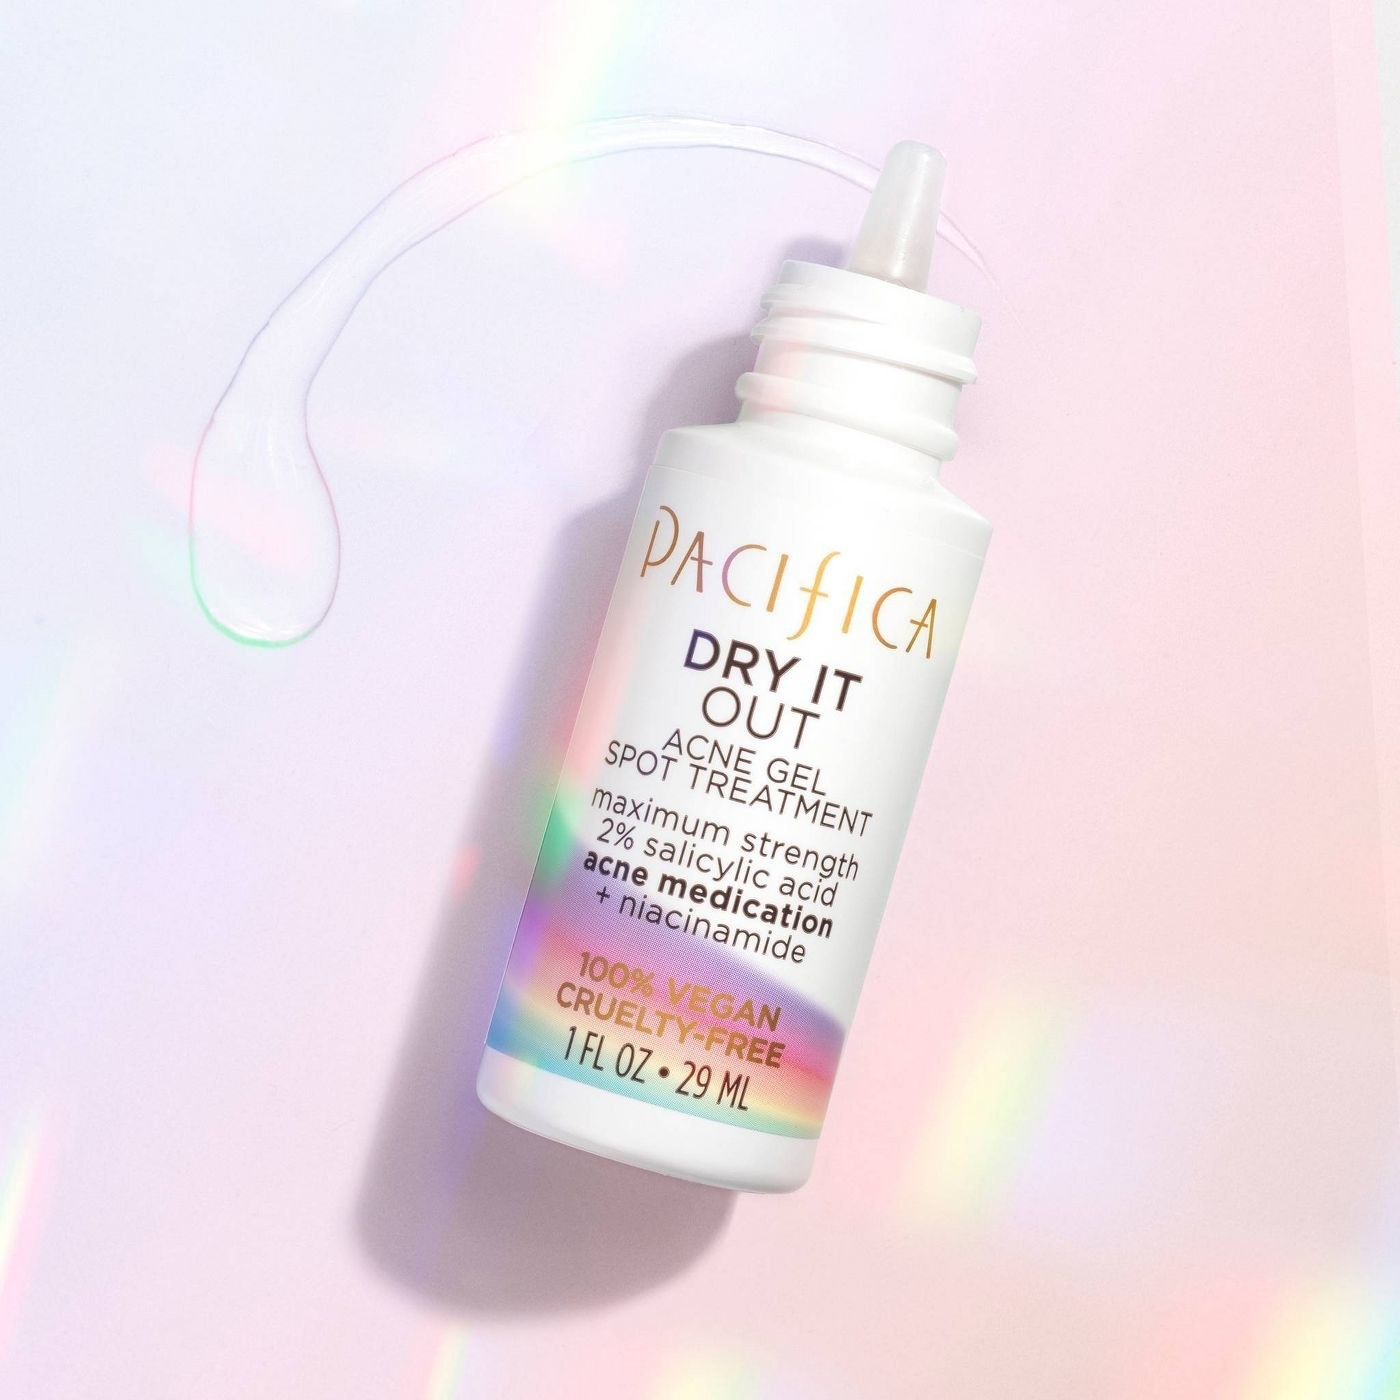 A bottle of acne gel spot treatment on a holographic backdrop